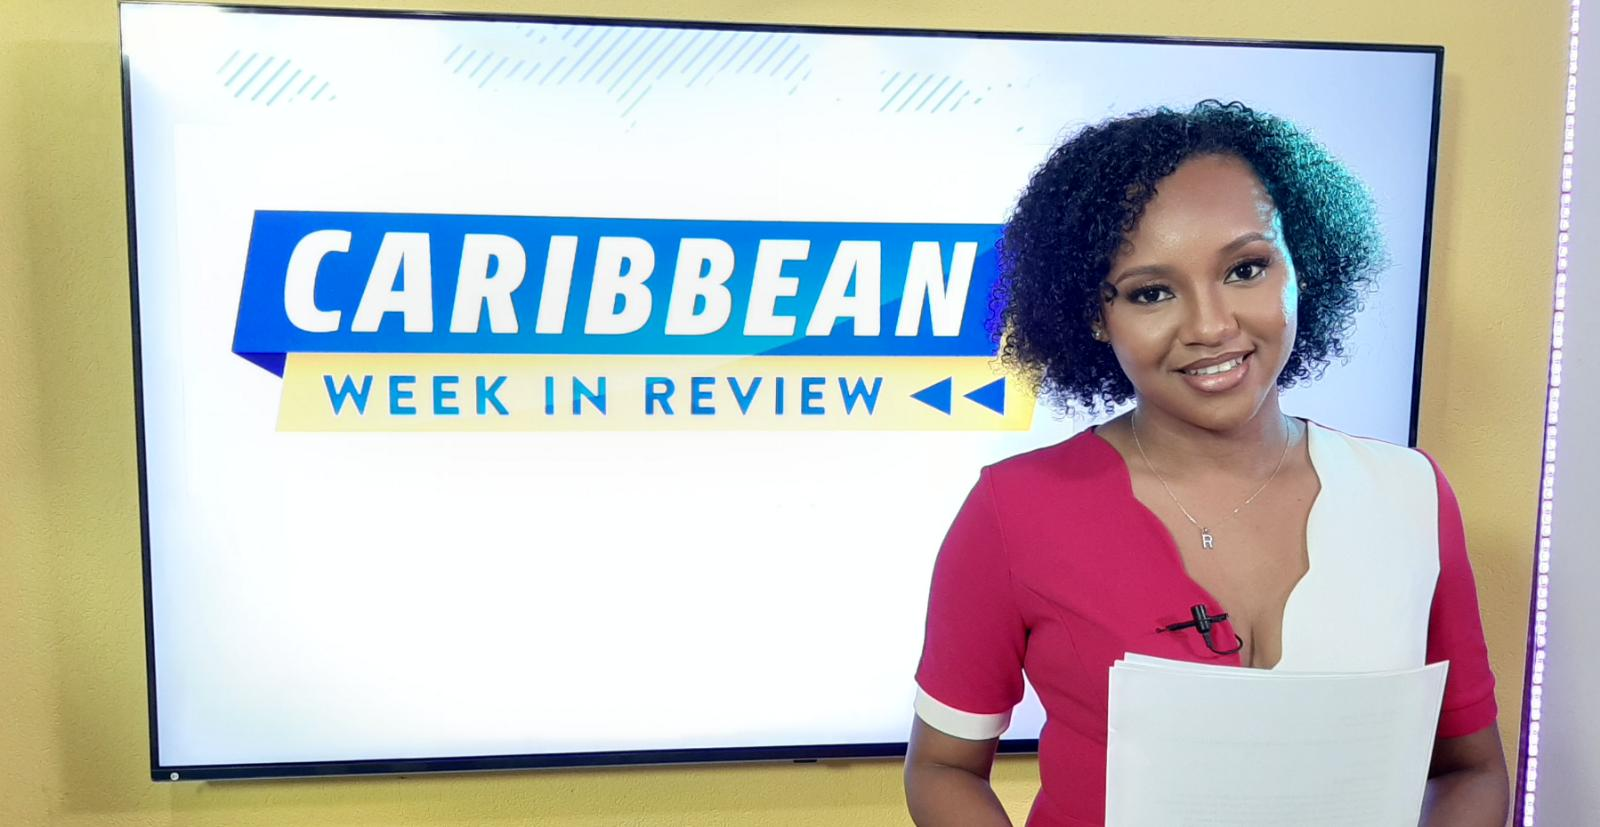 Caribbean Week in Review Joins One Caribbean Television